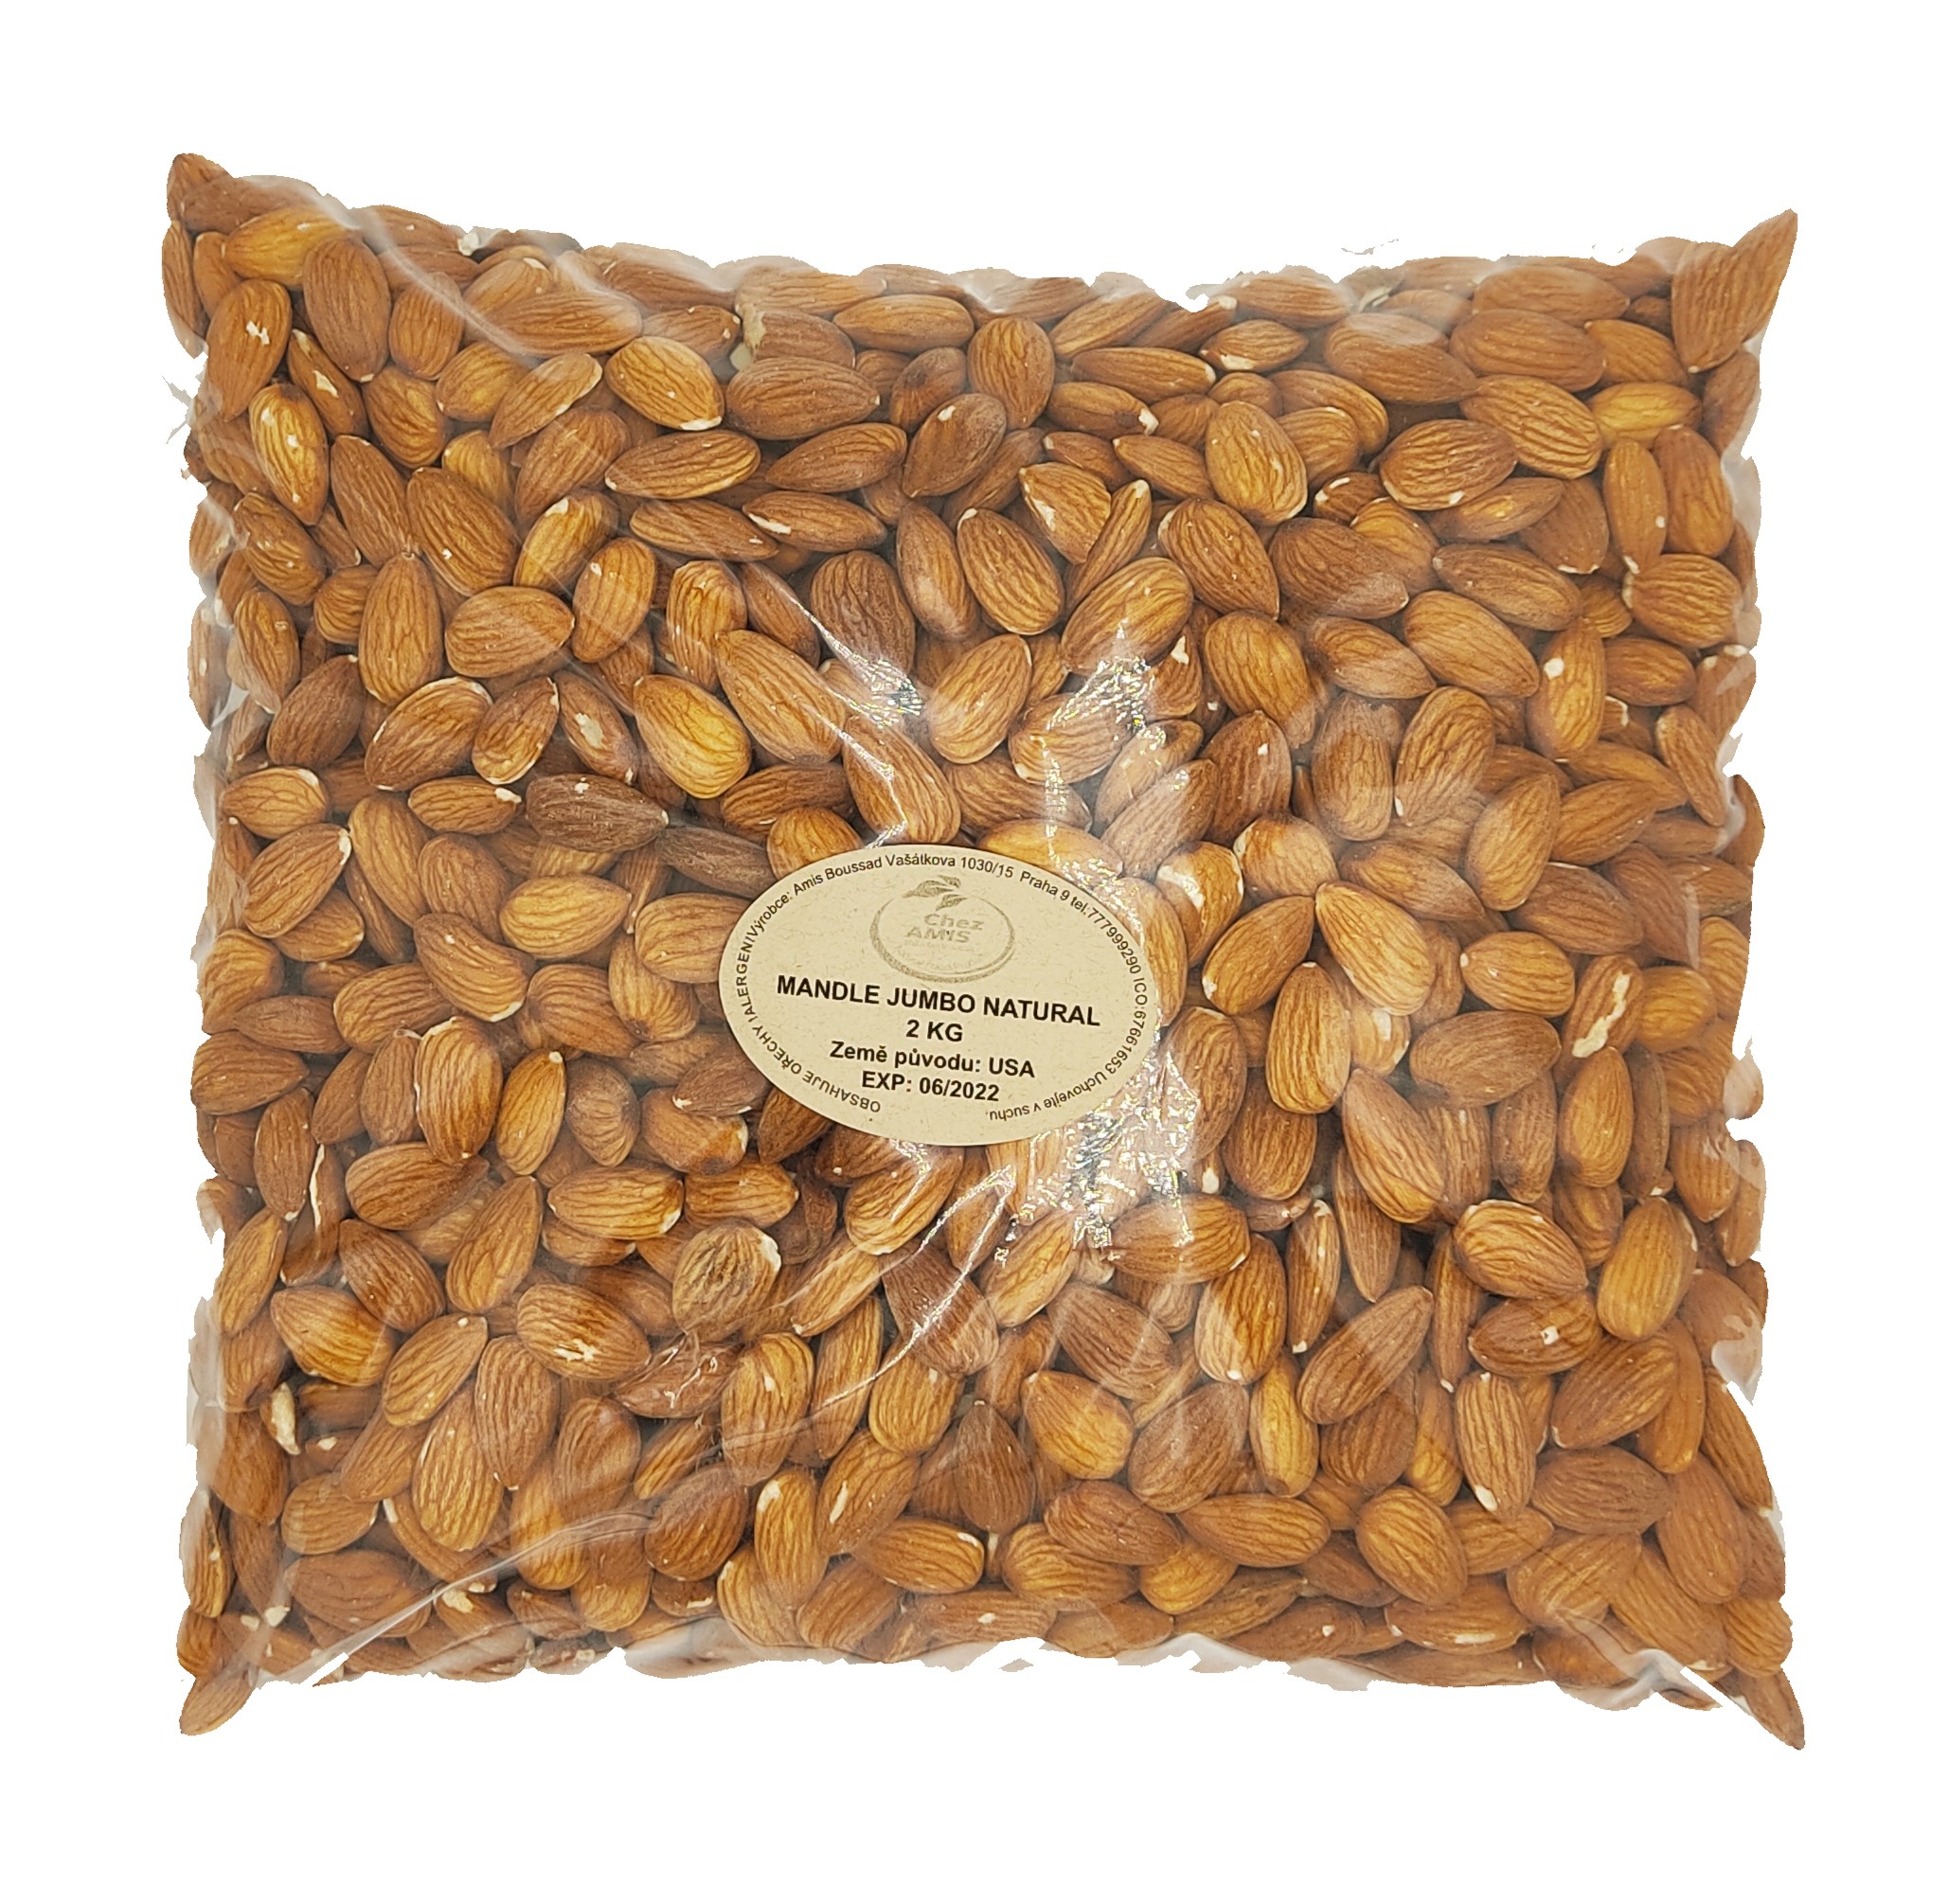 Mandle natural jumbo 2kg